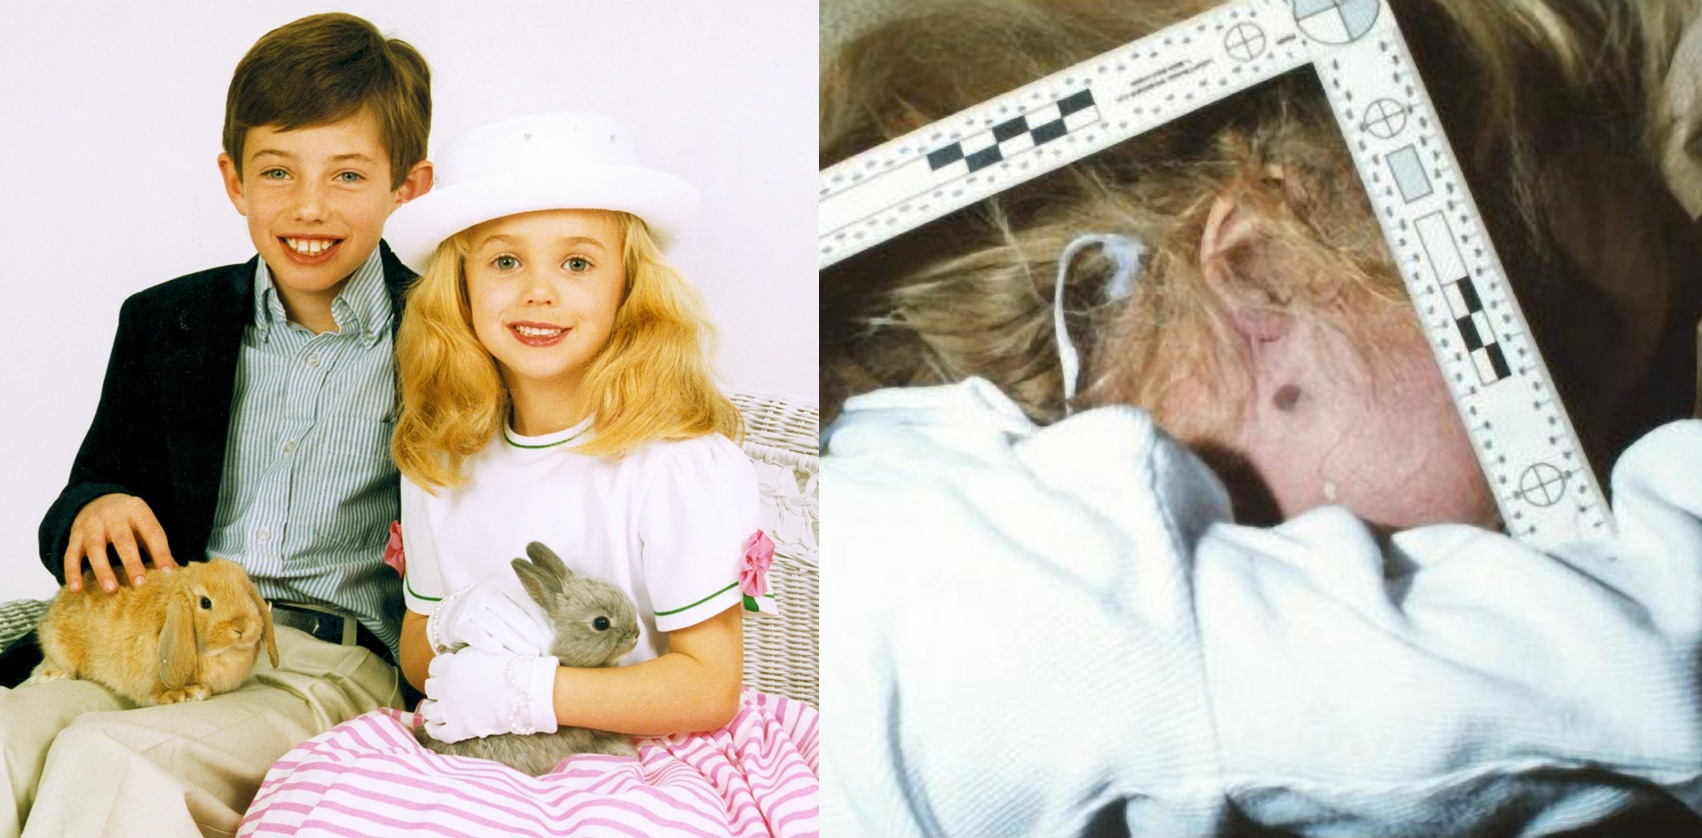 jonbenet-ramsey-with-brother 10 Exclusive True Crime Stories Guaranteed To Blow Your Mind